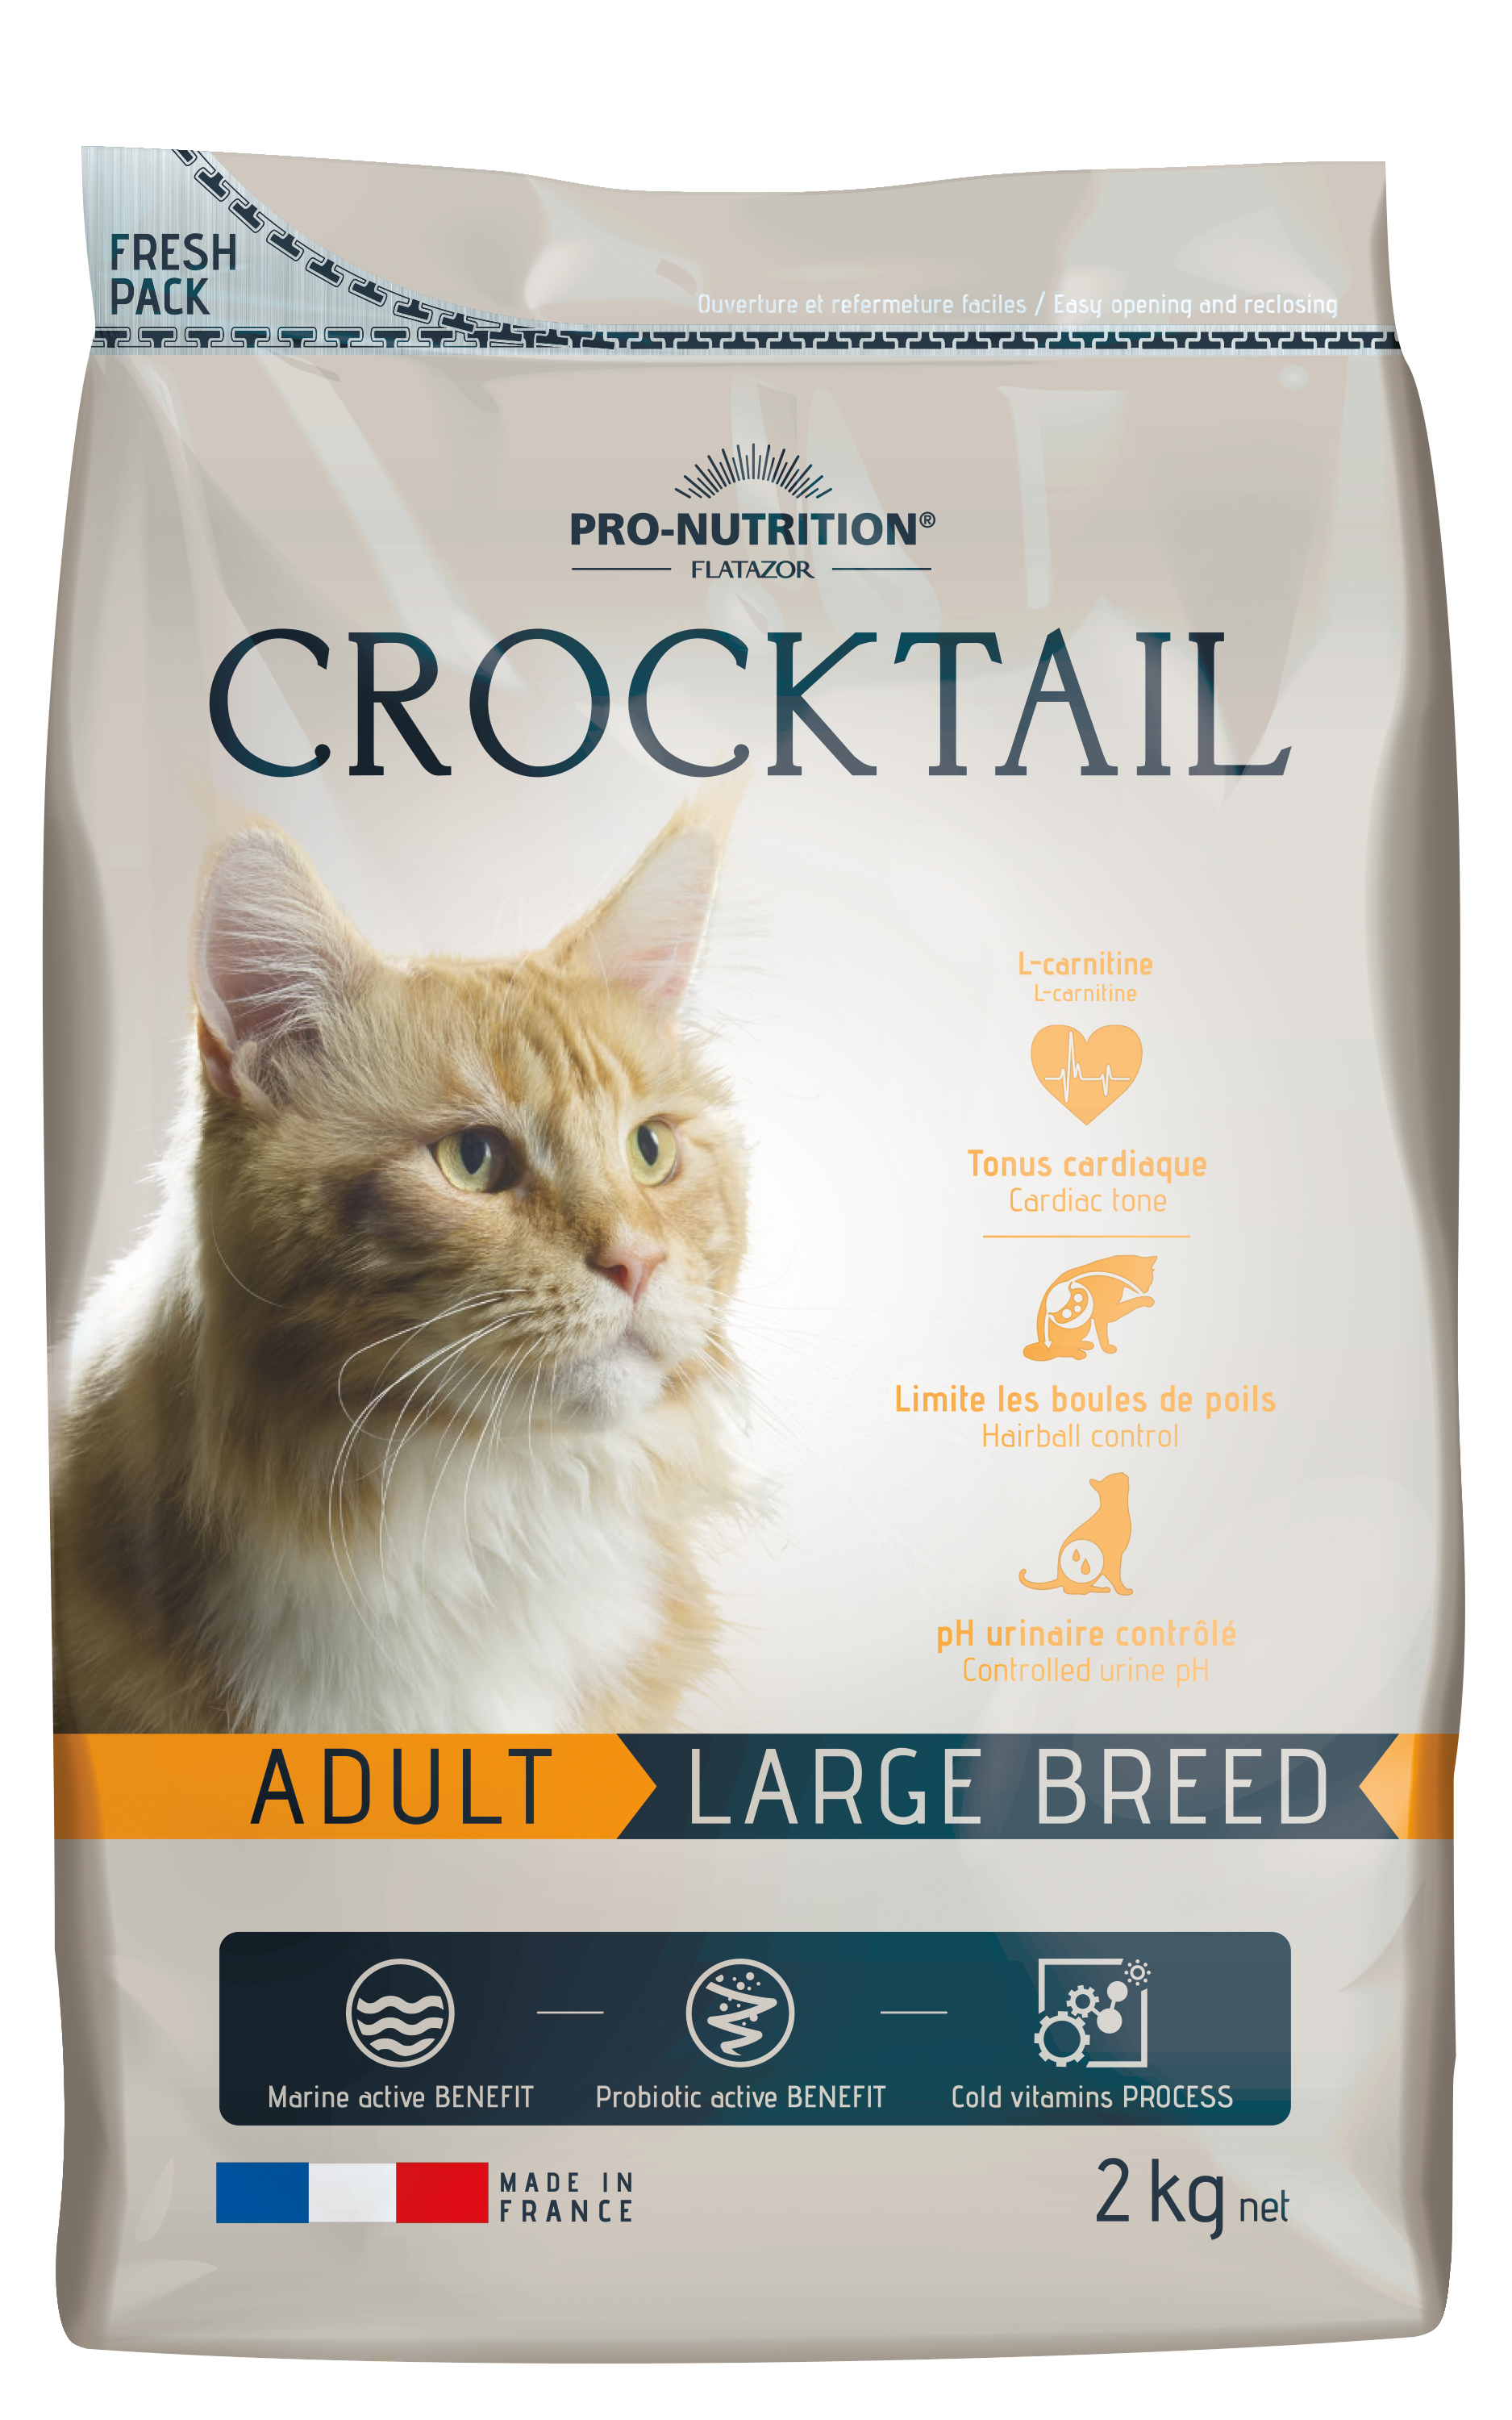 Flatazor Crocktail Adult Large Breed Cats 10kg